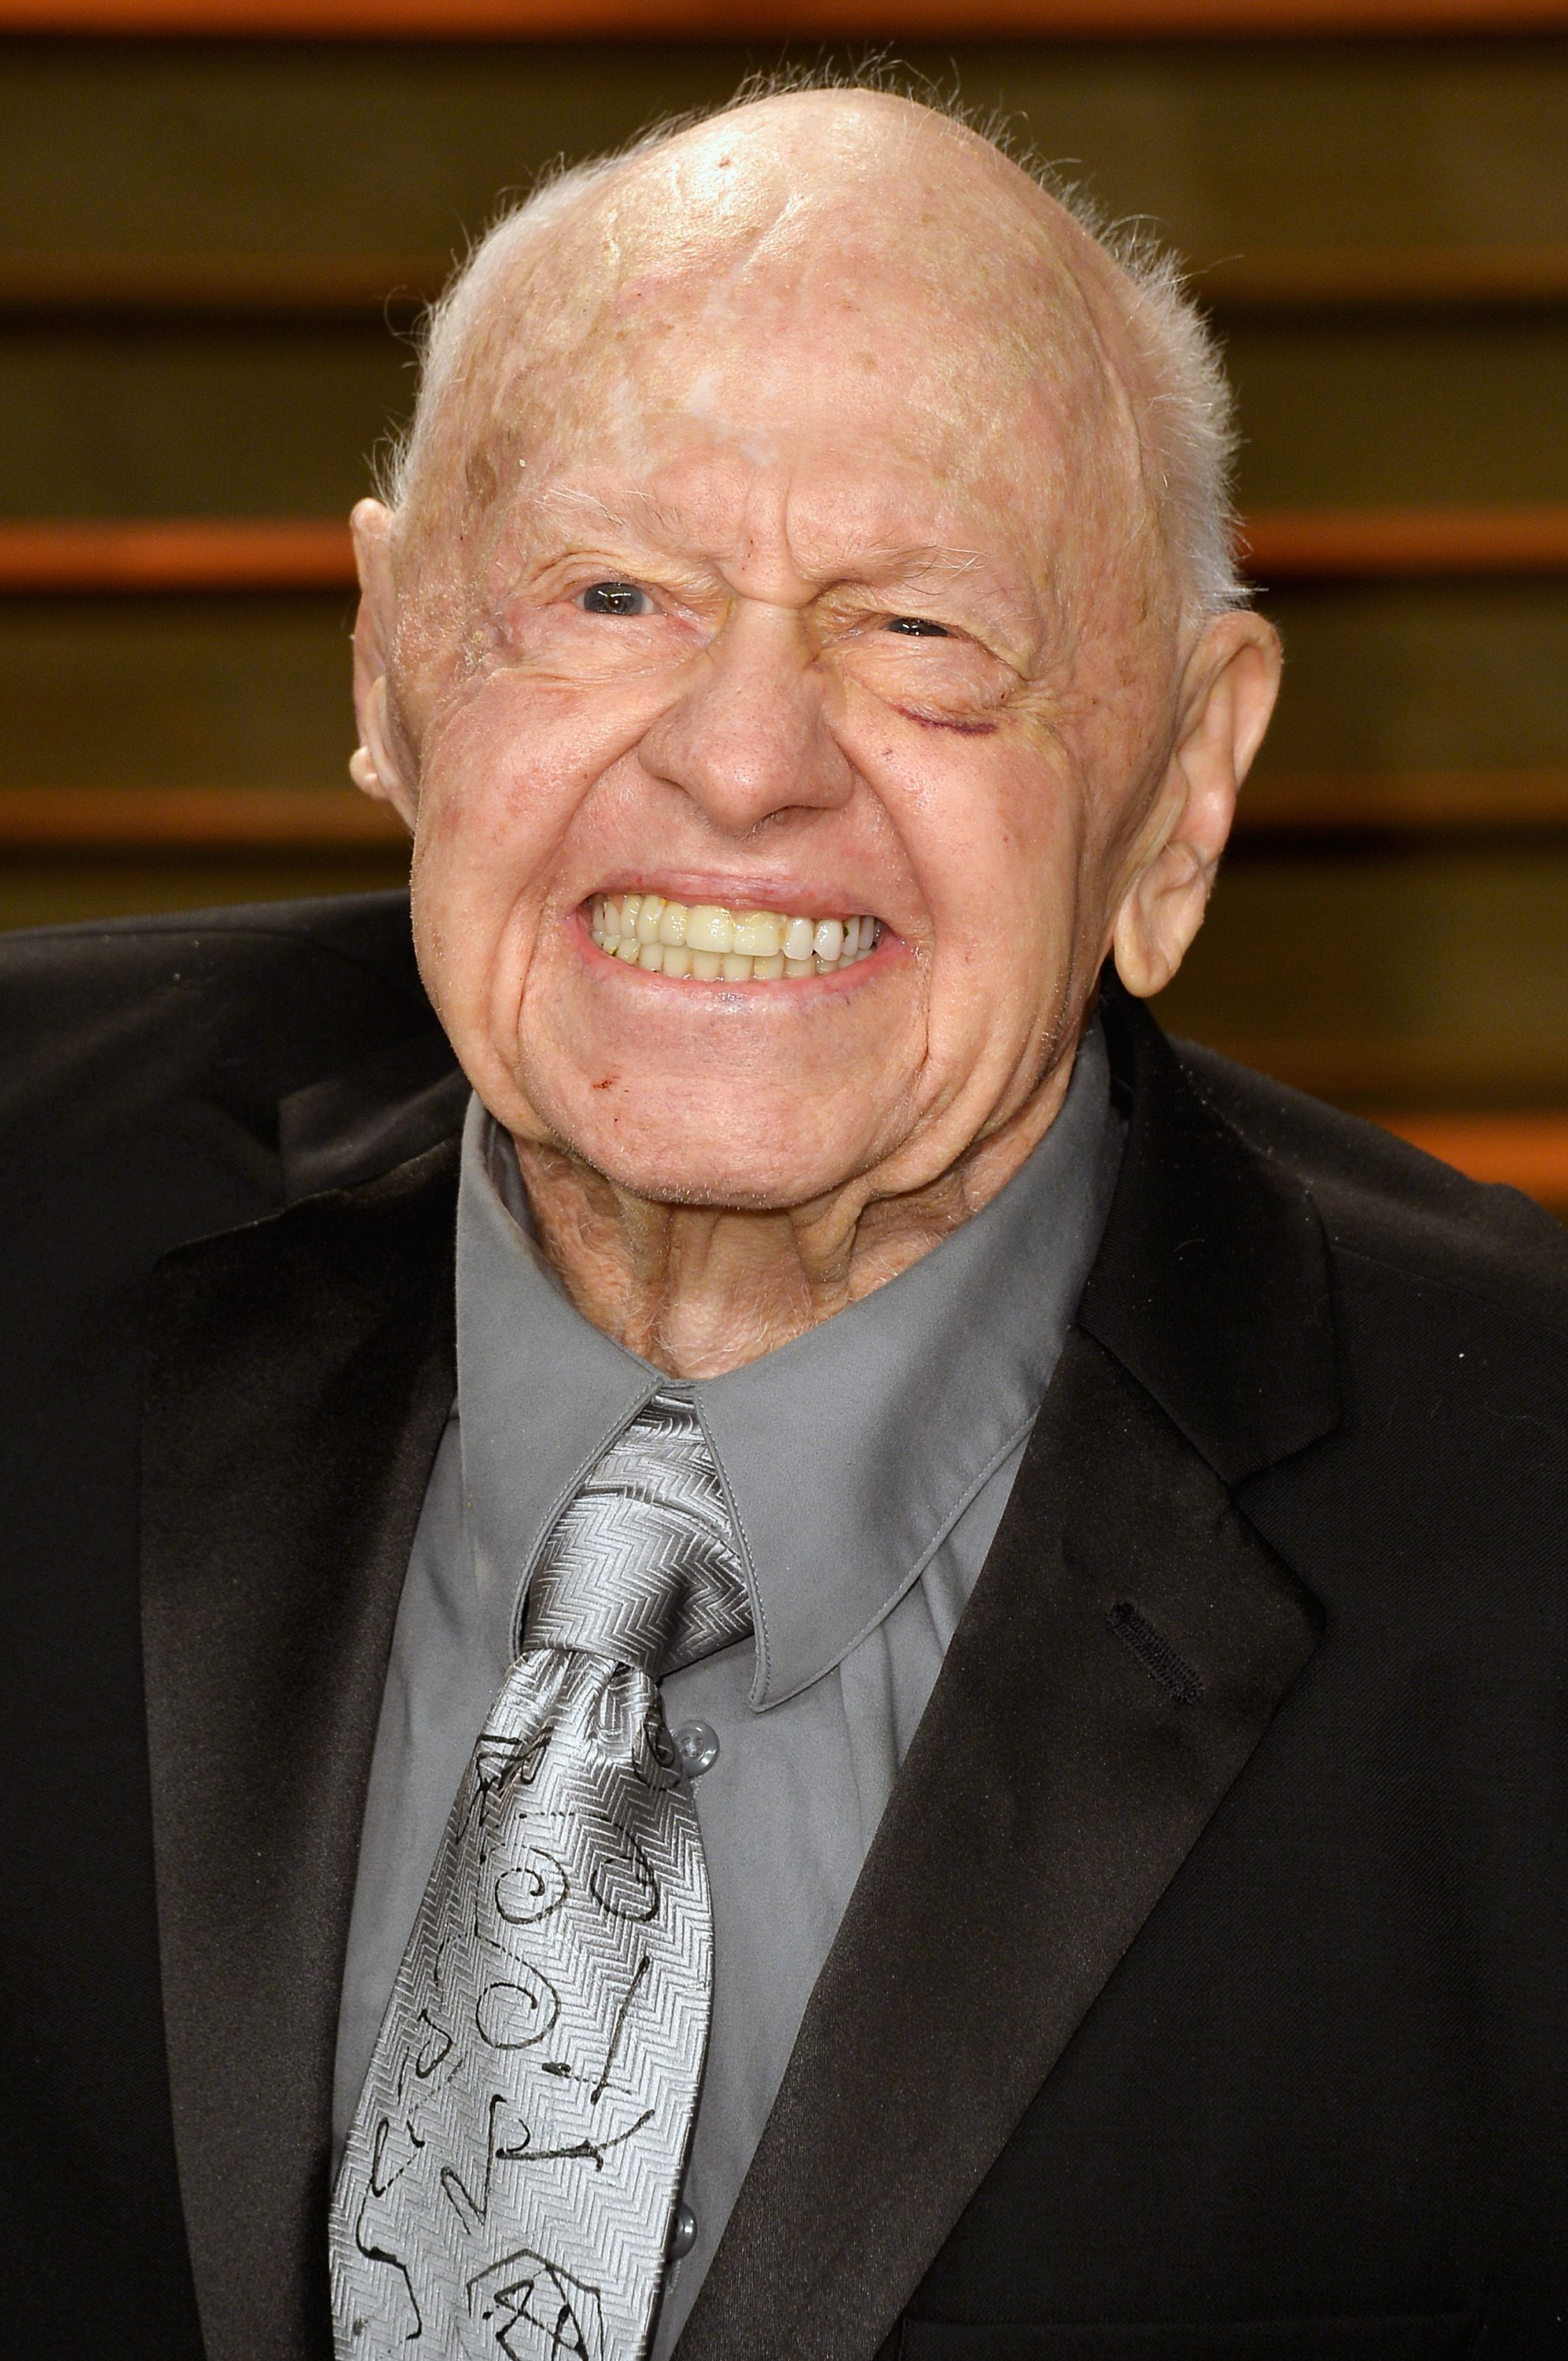 Mickey Rooney at the Vanity Fair Oscar Party hosted by Graydon Carter on March 2, 2014, in West Hollywood, California | Photo: Pascal Le Segretain/Getty Images